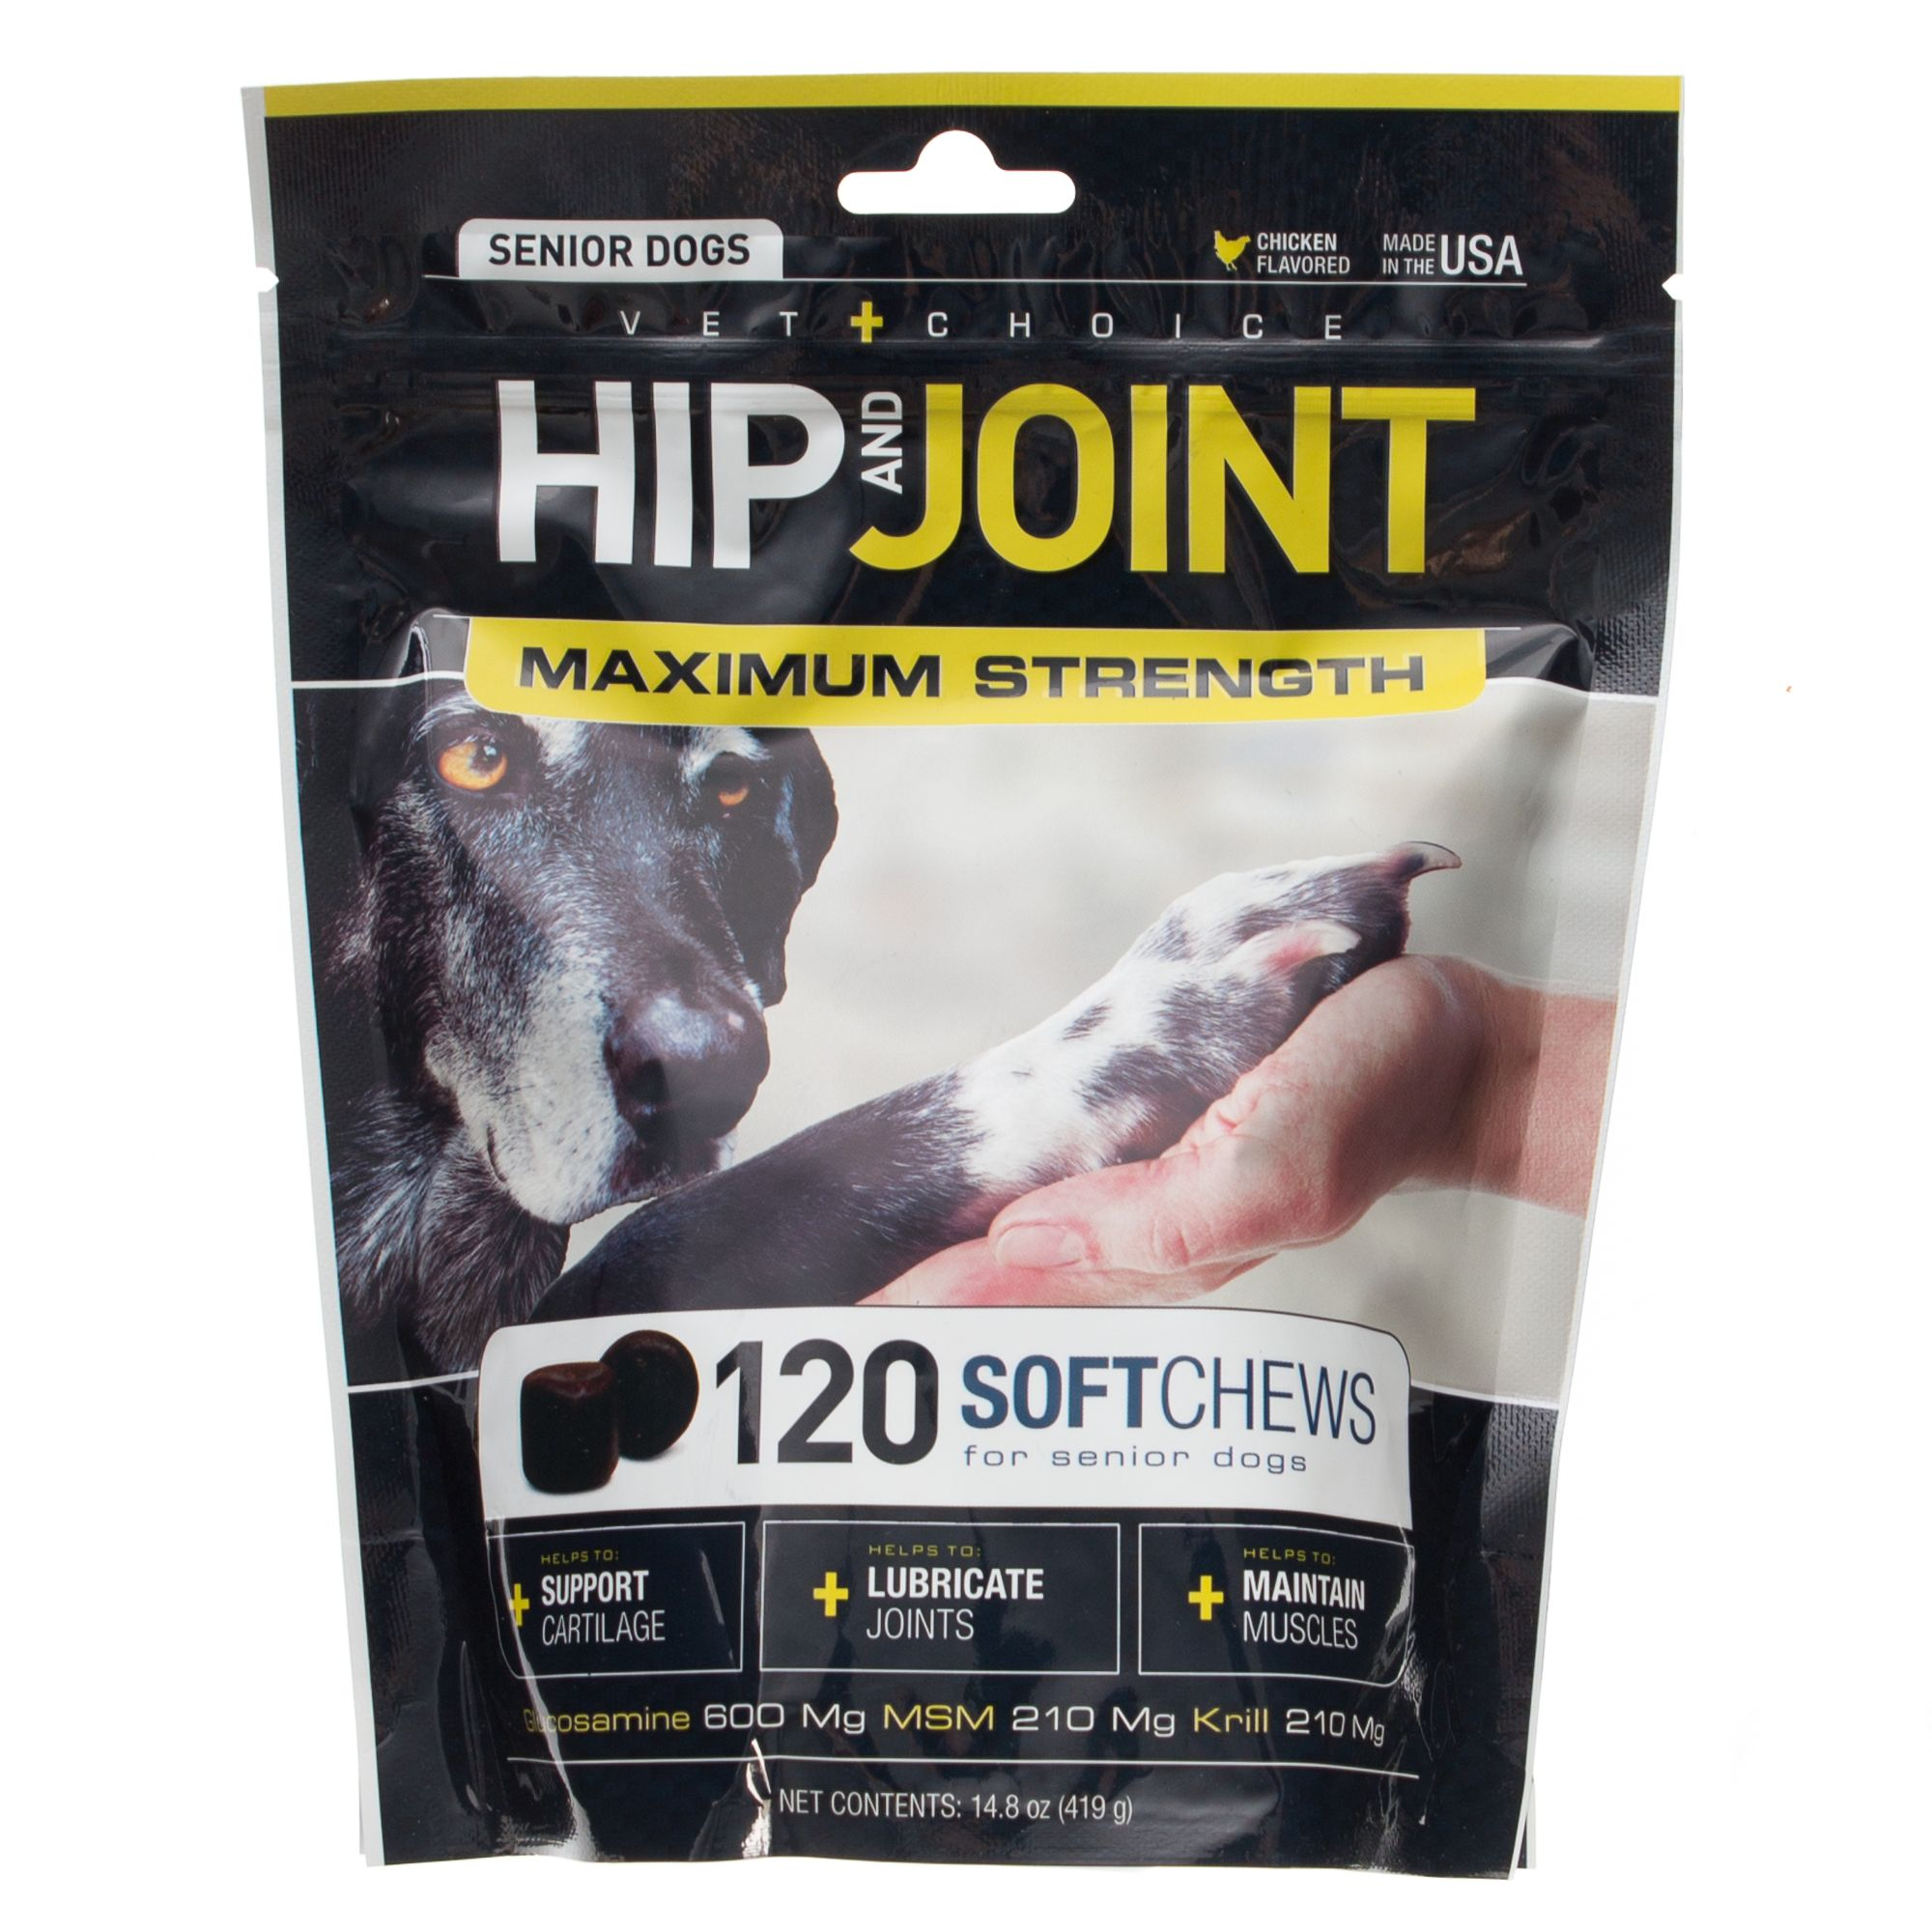 Dog Md Hip And Joint Senior Dog Soft Chews Size 120 Count